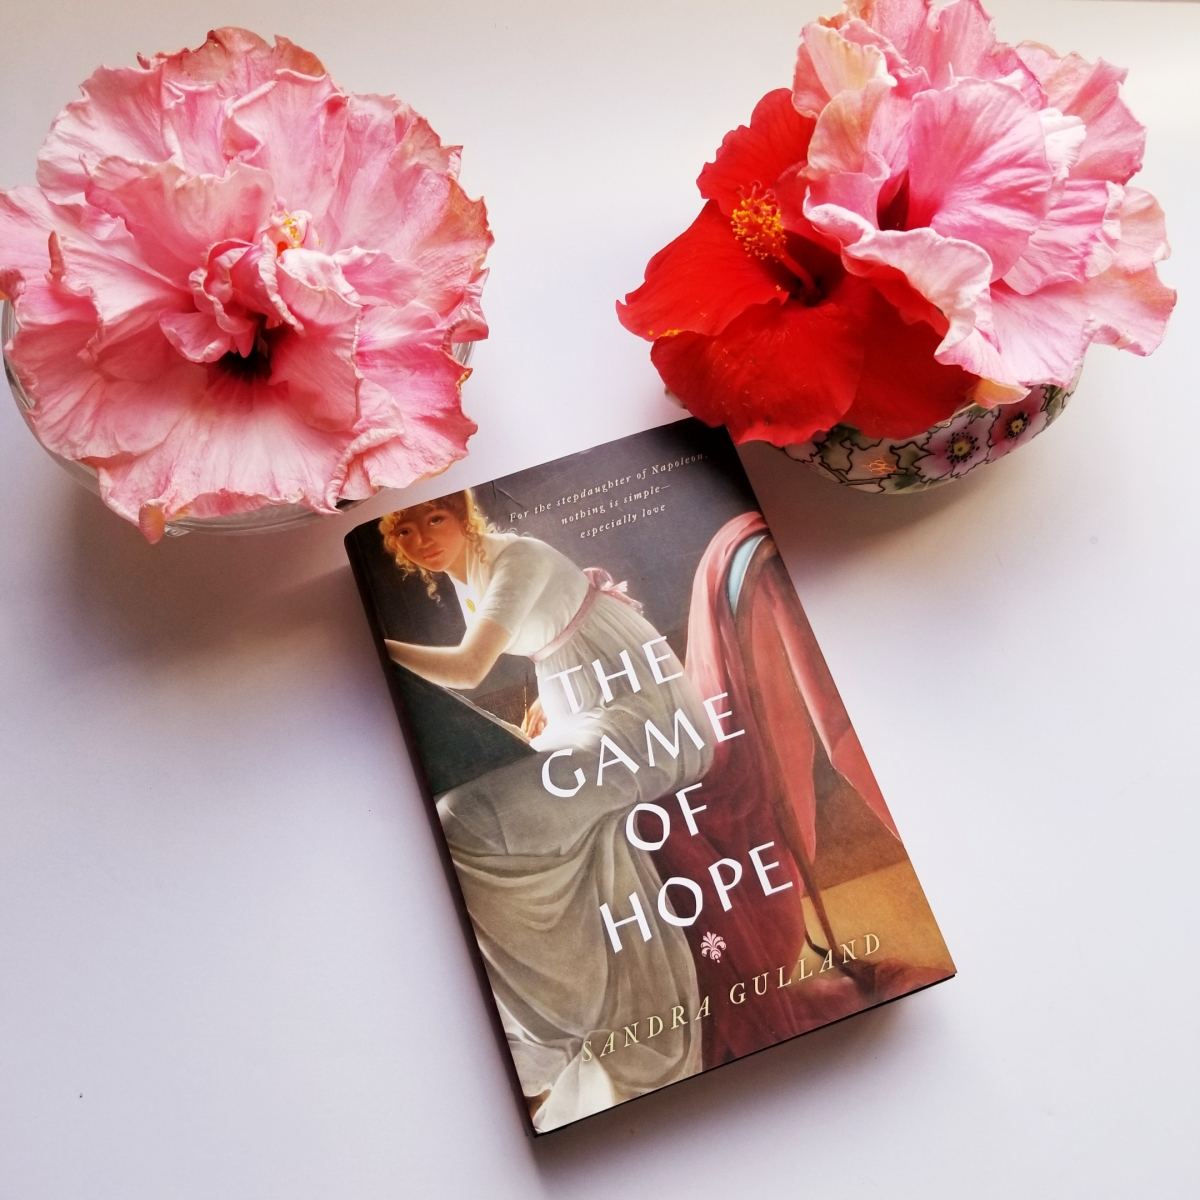 The Game of Hope by Sandra Gulland #bookreview #tarheelreader #thrgamehope @hfvbt @Sandra_Gulland  @VikingBooks  #thegameofhope #blogtour #HFVBTBlogTours #giveaway